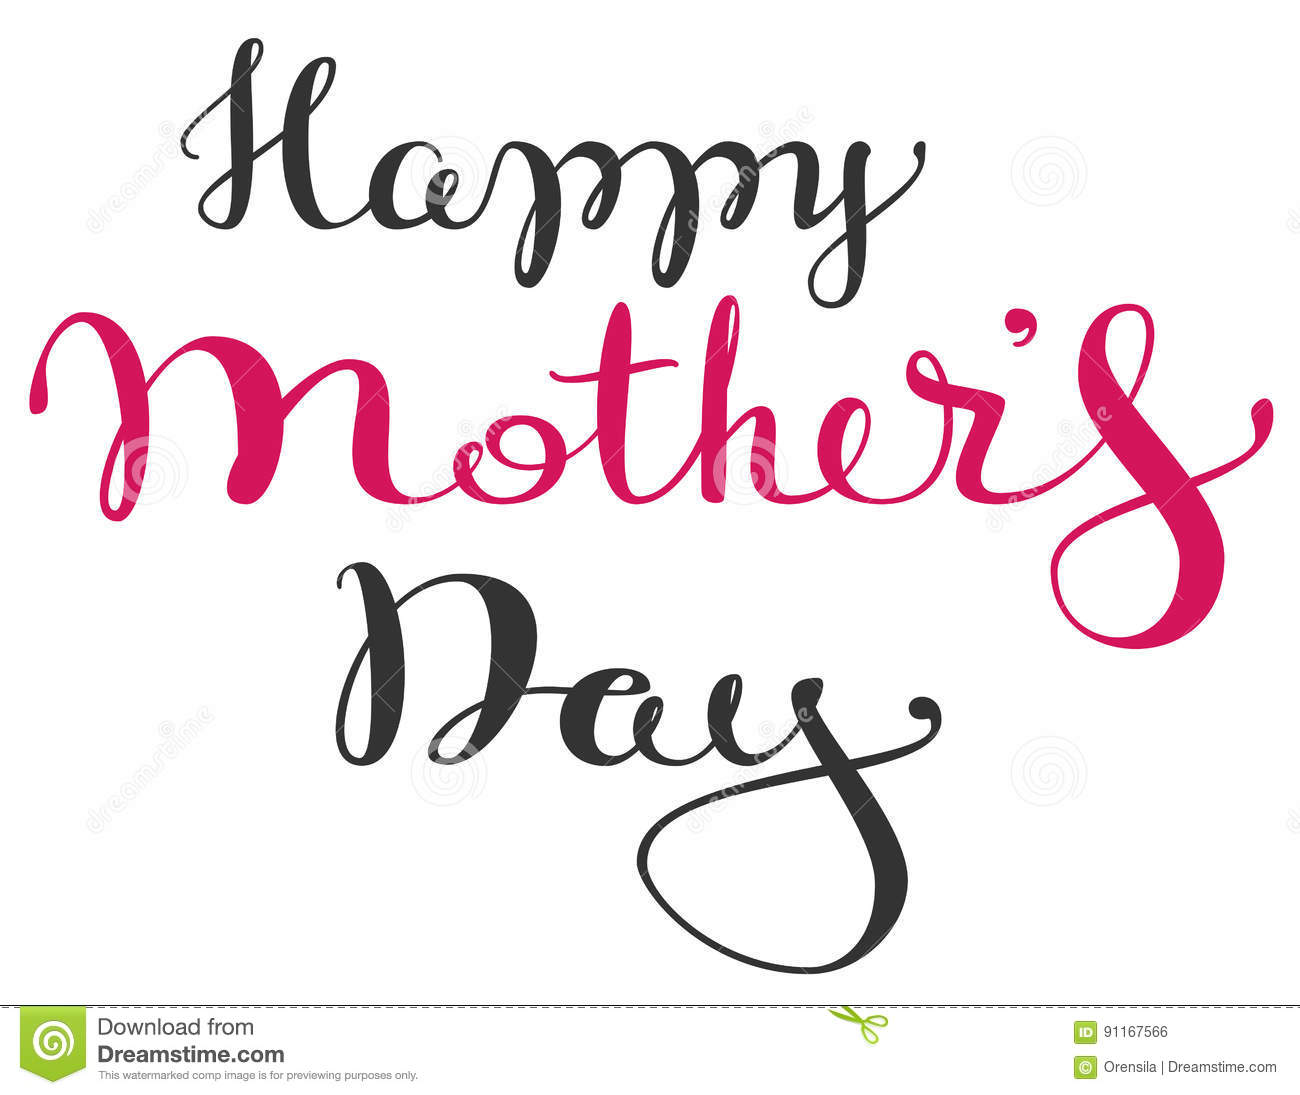 Happy mothers day handwritten lettering text for greeting card happy mothers day handwritten lettering text for greeting card kristyandbryce Choice Image